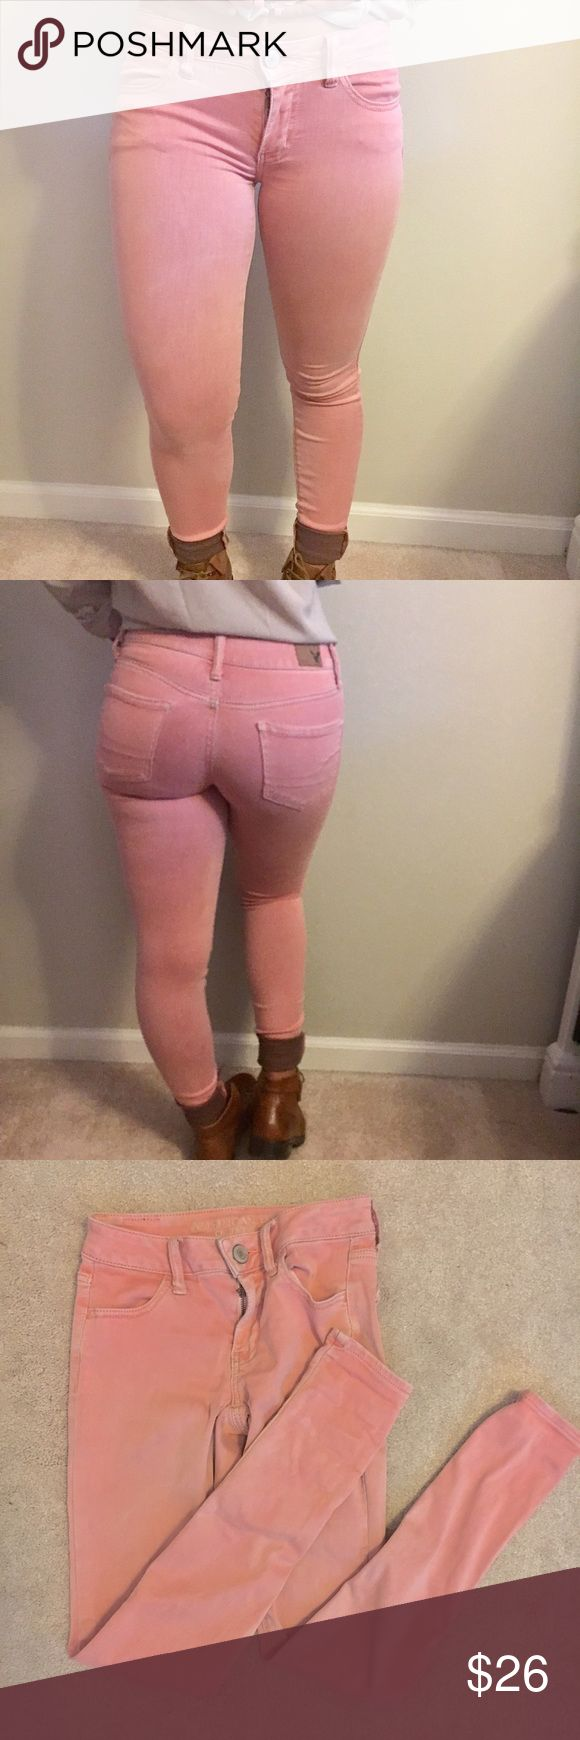 AMERICAN EAGLE salmon pink colored jeggings Size 0. 26 inch waist and 28.5 inch inseam. Perfect condition and super stretchy and cute American Eagle Outfitters Jeans Skinny